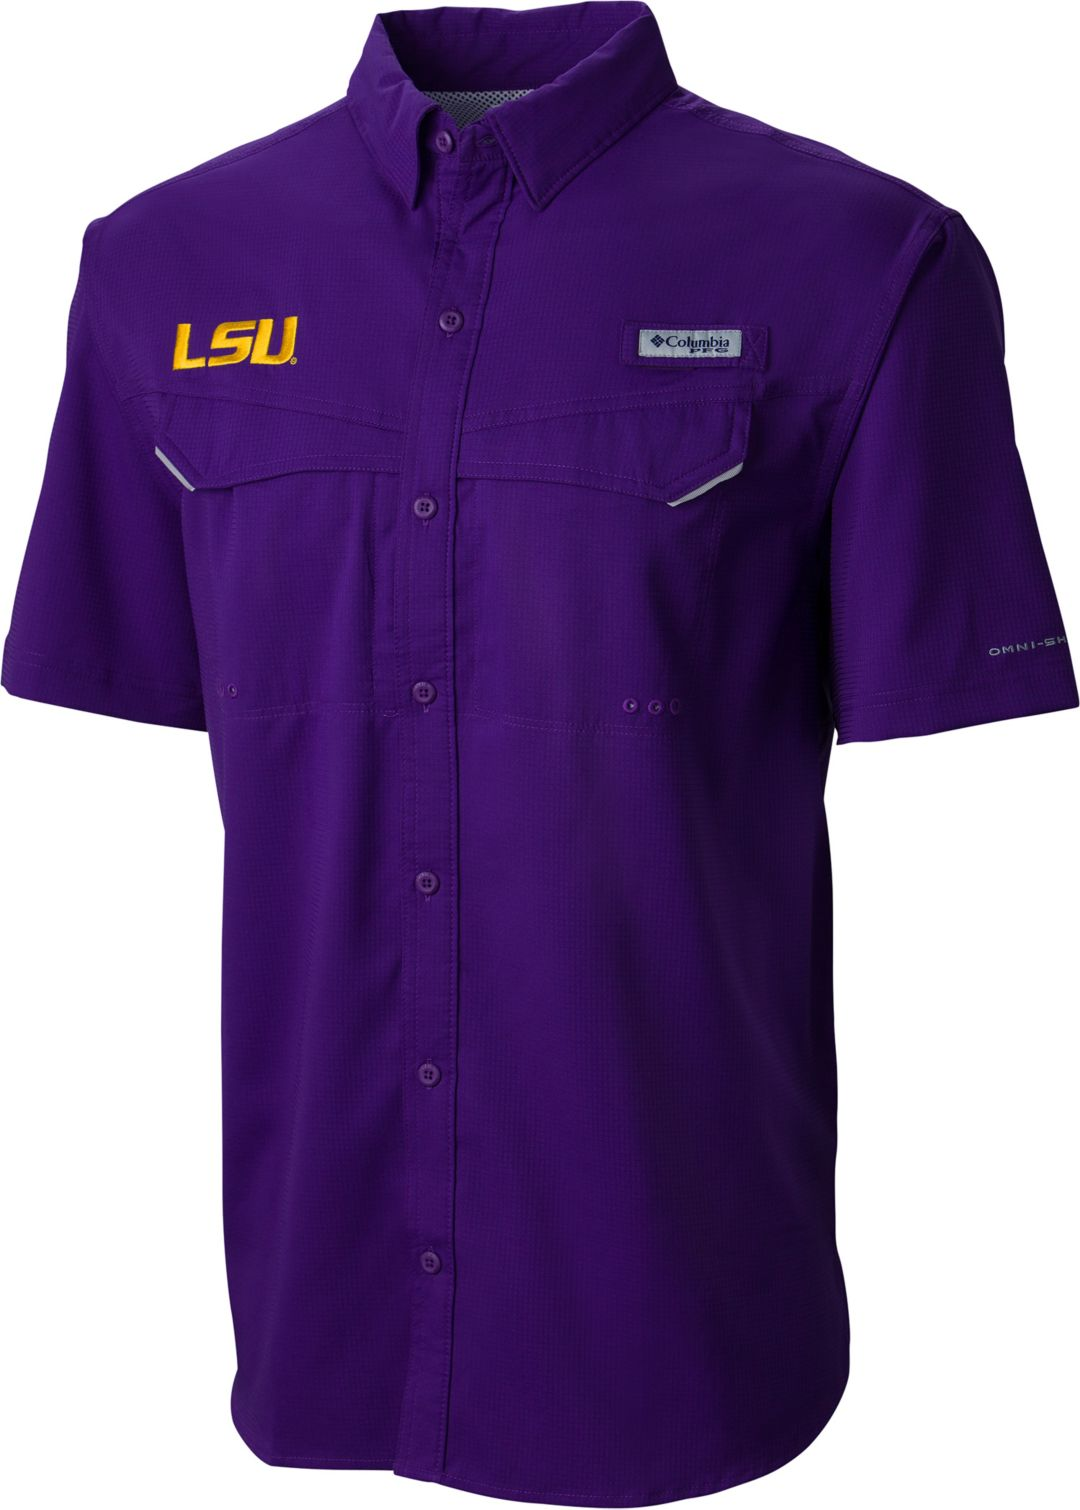 0be149a6c87 Columbia Men's LSU Tigers Purple Low Drag Offshore Performance Shirt ...